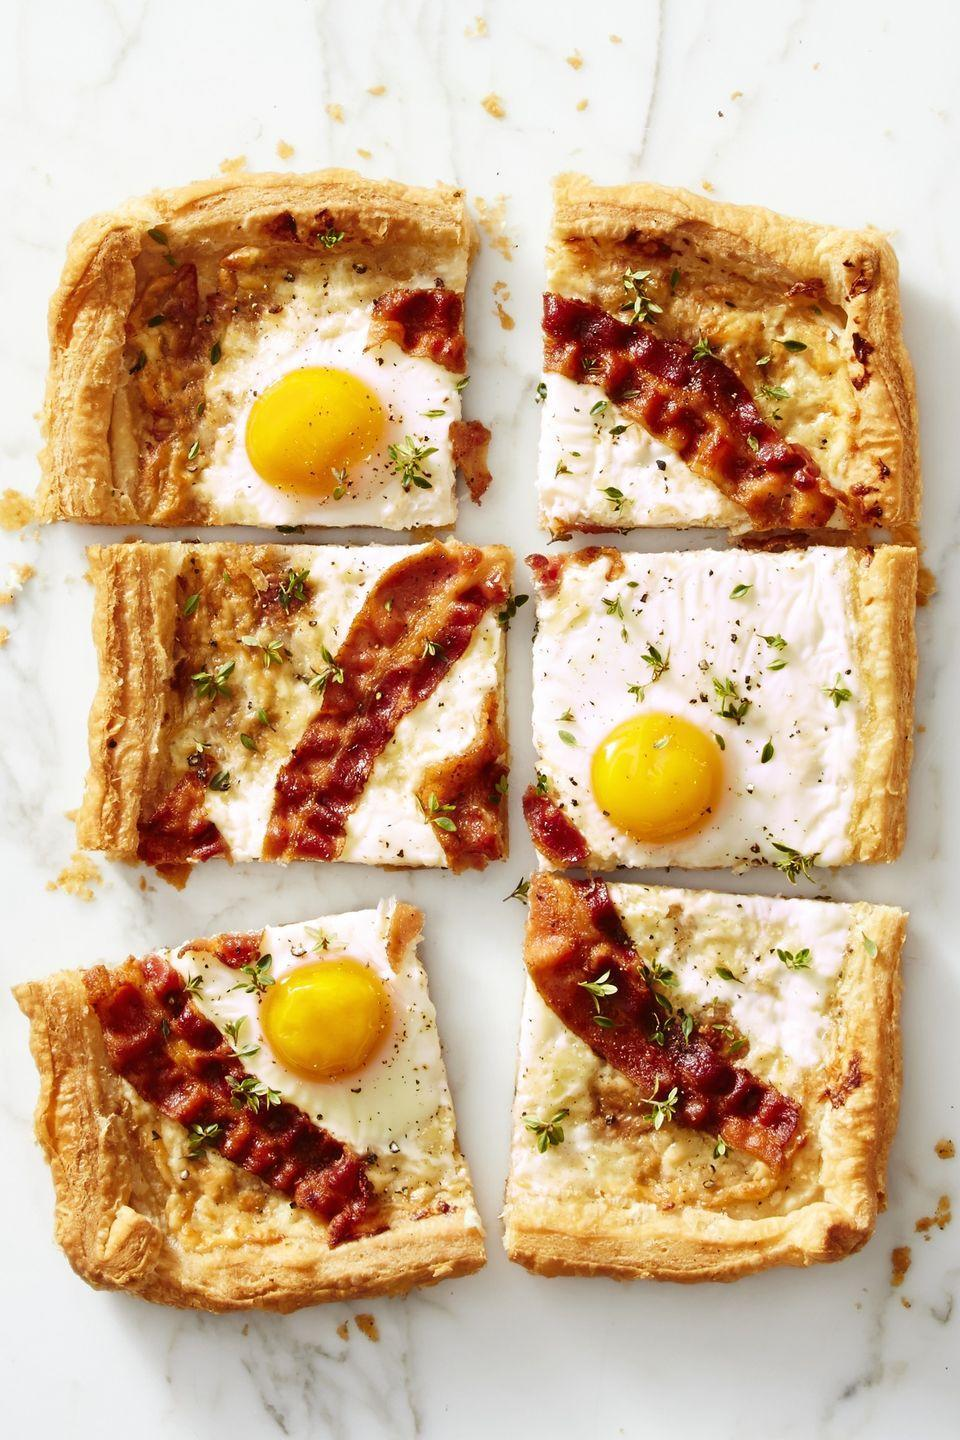 "<p>It's pizza for breakfast, only flakier. </p><p><em><a href=""https://www.goodhousekeeping.com/food-recipes/easy/a42425/bacon-gruyere-breakfast-pie-recipe/"" rel=""nofollow noopener"" target=""_blank"" data-ylk=""slk:Get the recipe for Bacon Gruyére Breakfast &quot;Pie&quot; »"" class=""link rapid-noclick-resp"">Get the recipe for Bacon Gruyére Breakfast ""Pie"" »</a></em></p>"